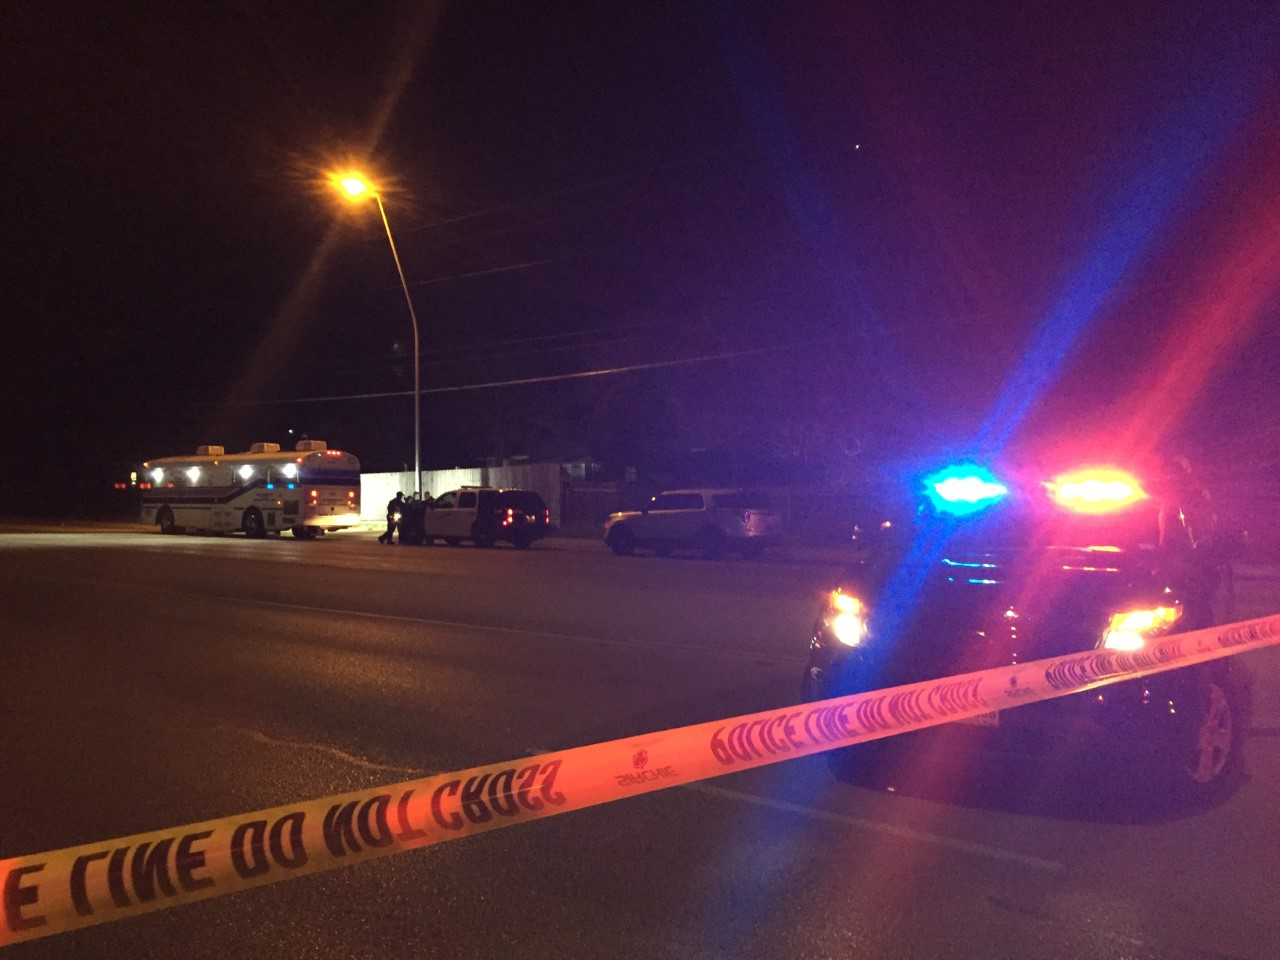 A woman was shot and killed in an officer involved shooting on Manchaca Road near Keilbar Lane in south Austin. Feb. 22, 2017 (KXAN Photo_Lesli_424381